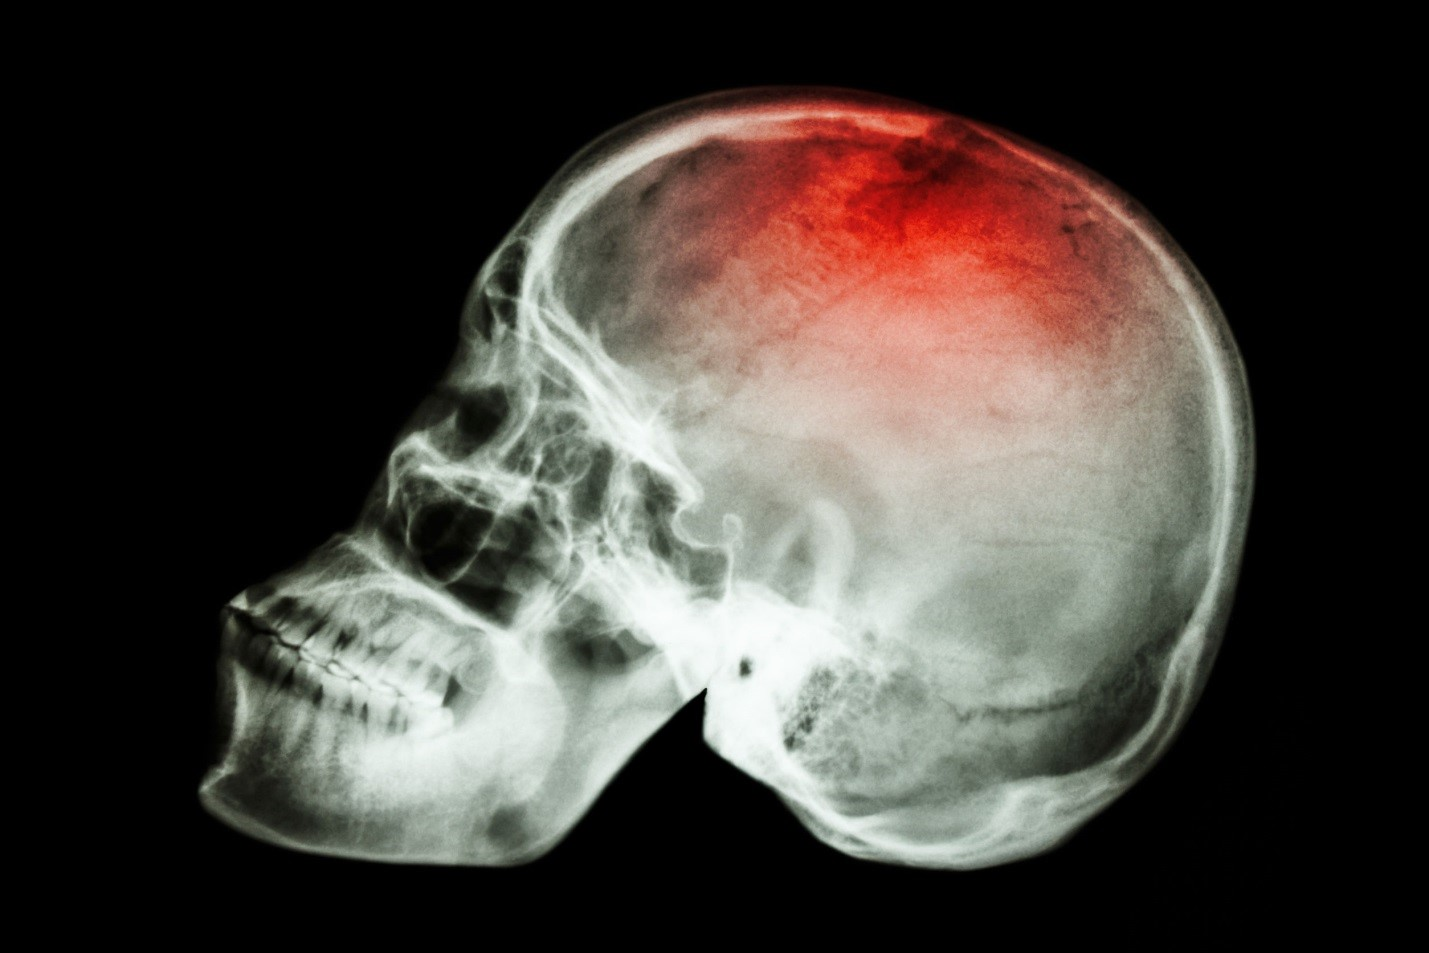 New Experimental Drug Reverses Memory Loss due to Brain Injury